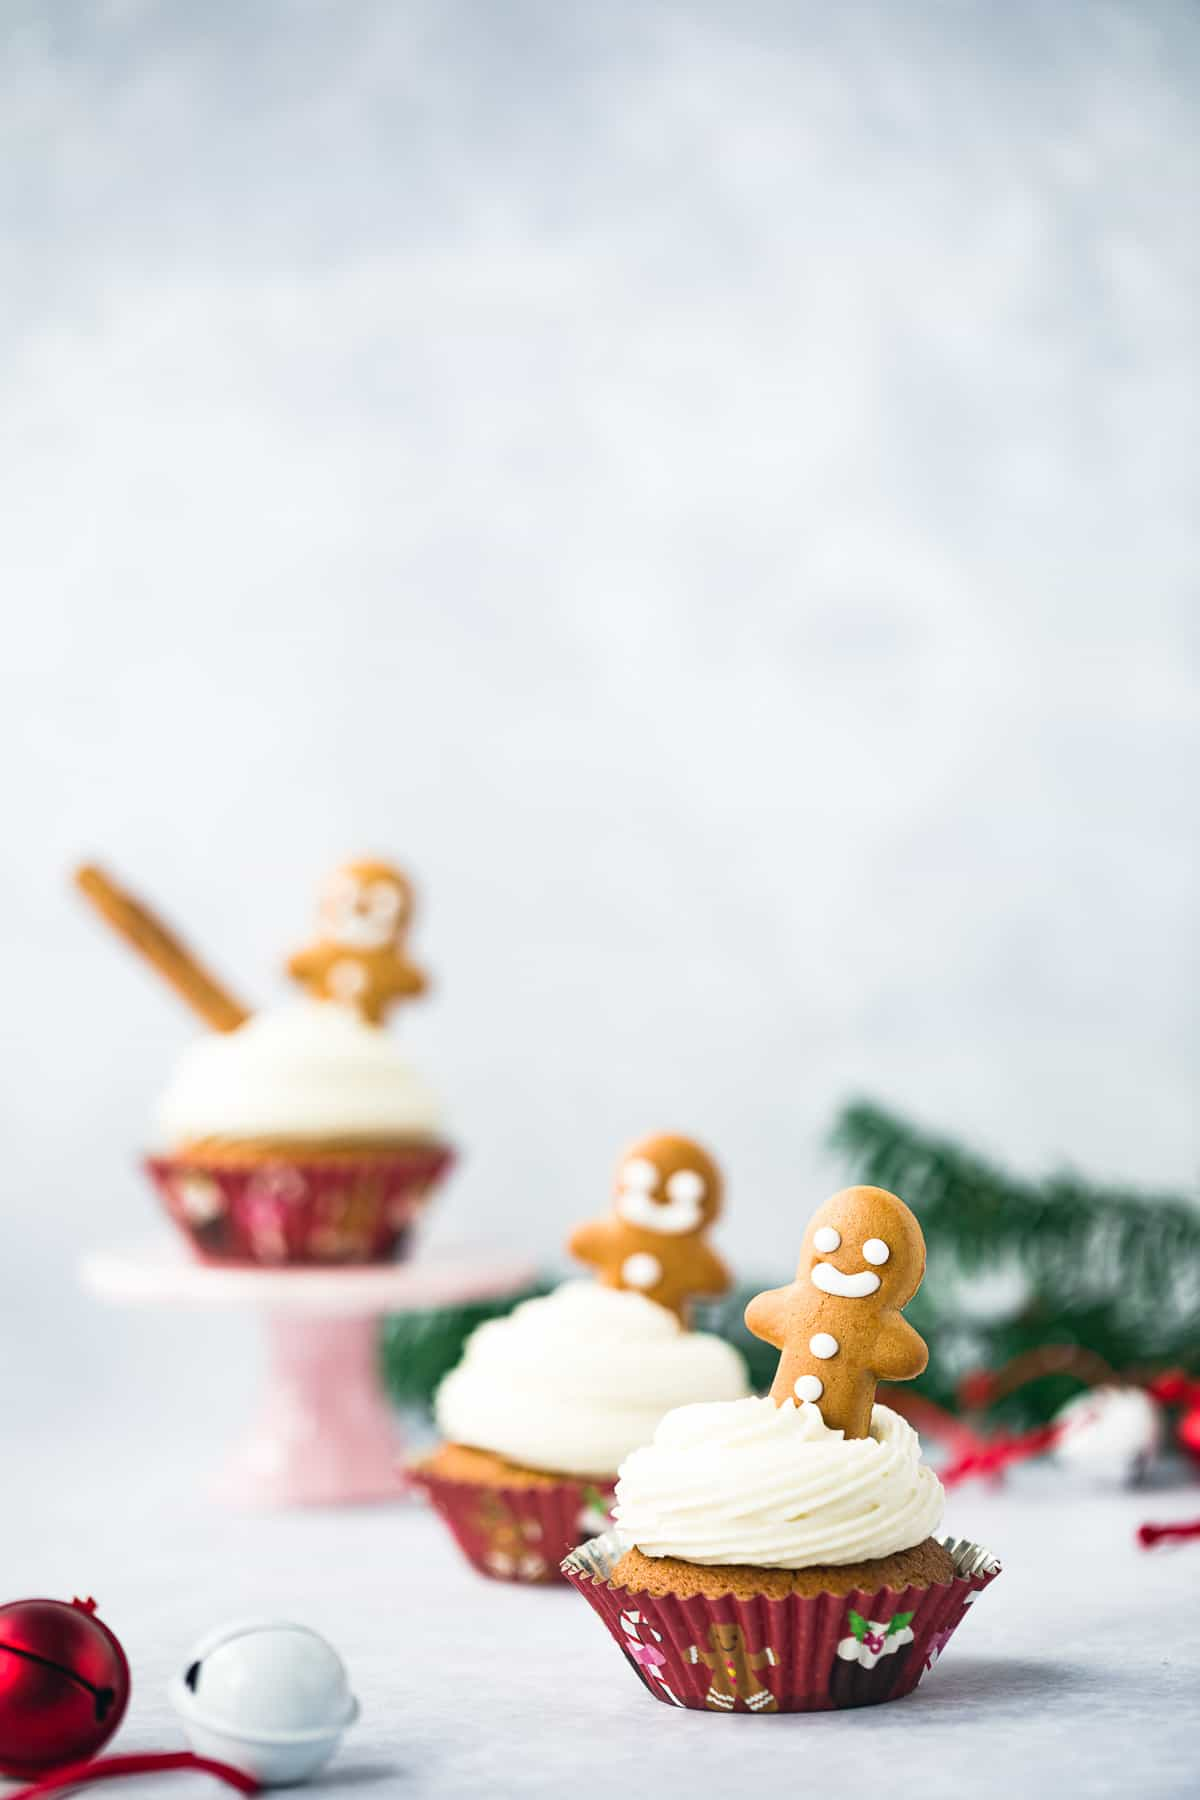 3 christmassy cupcakes surrounded by christmas baubles.